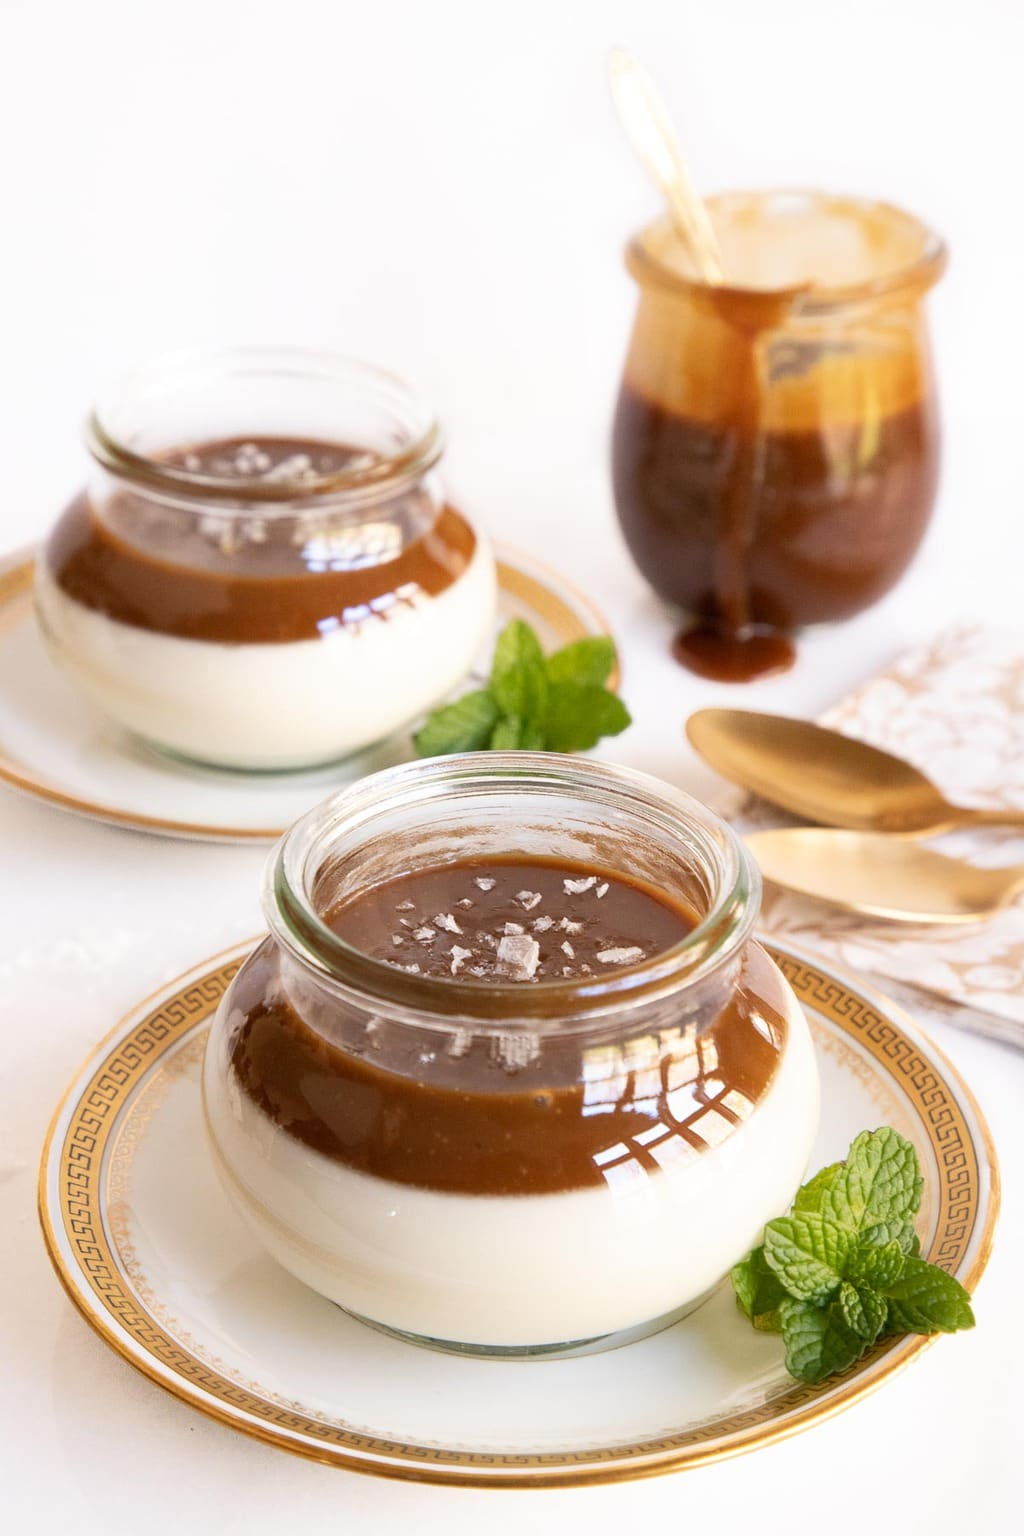 Vertical photo of Salted Butterscotch Panna Cotta in glass Weck jars garnished with fresh mint leaves.